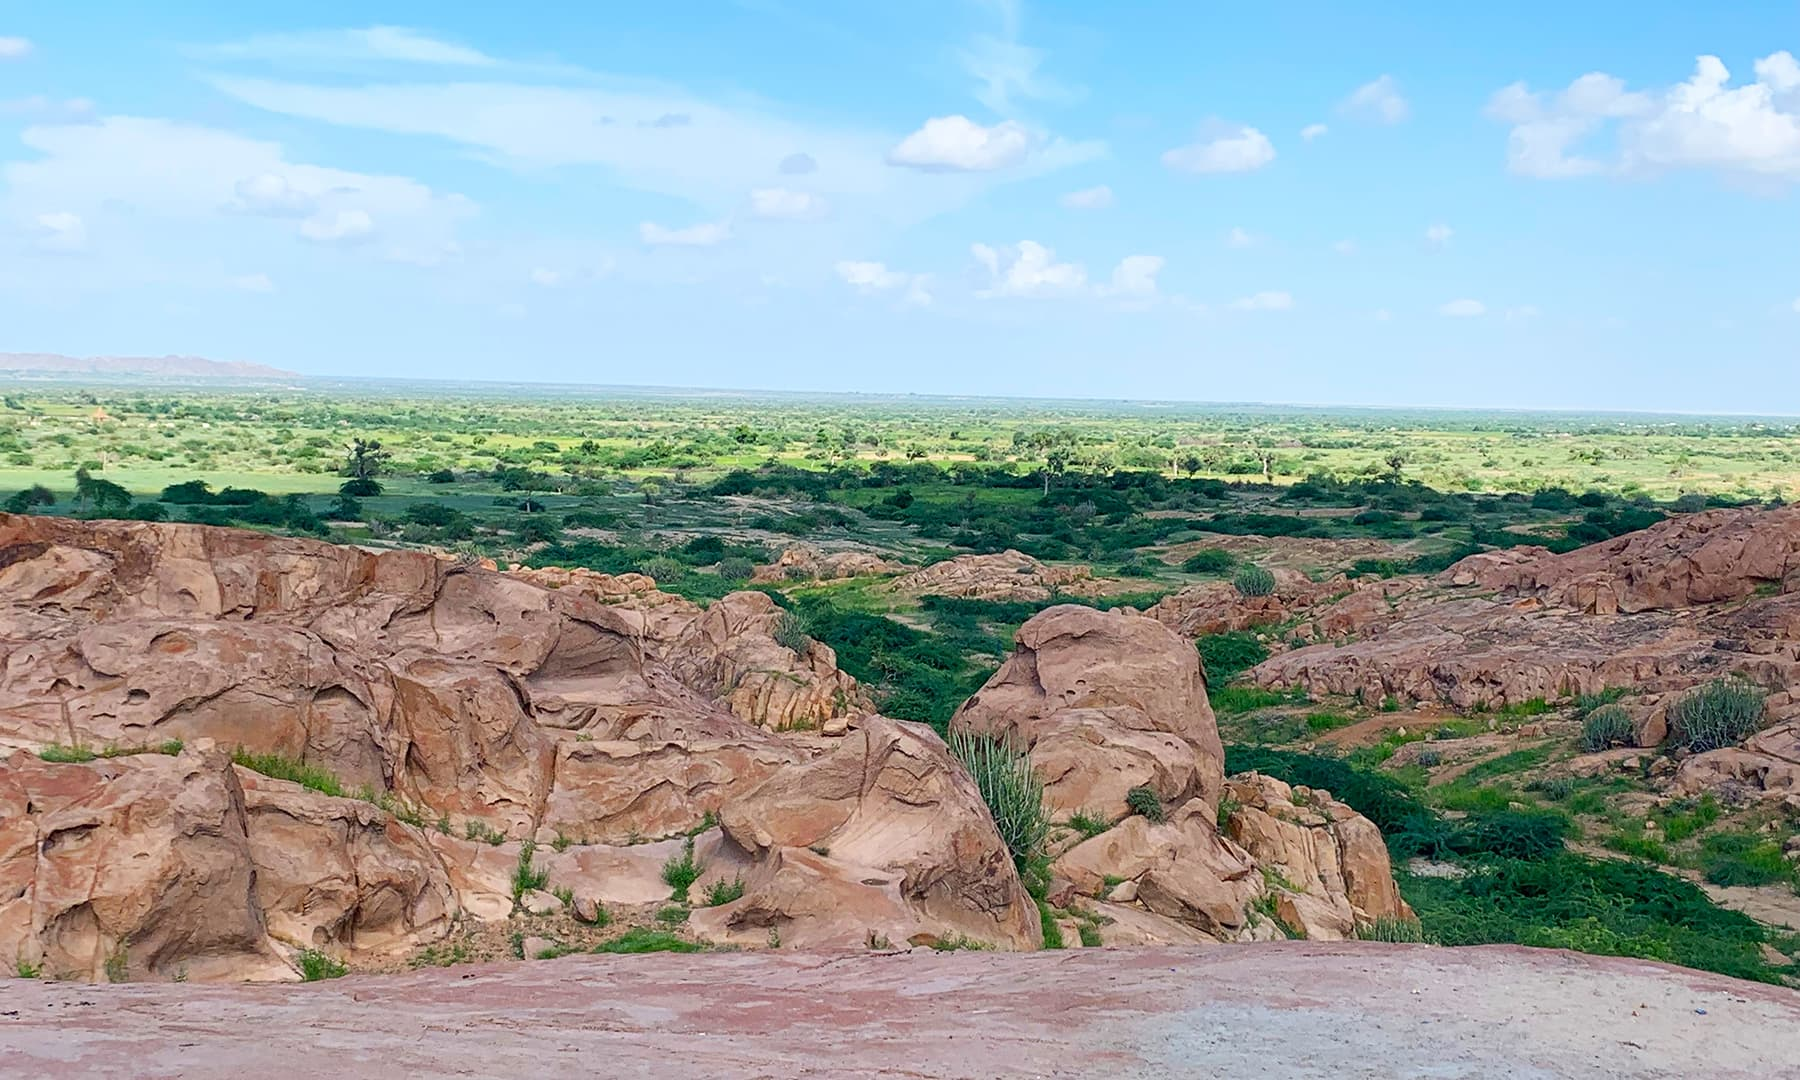 The remarkable Karoonjhar hills turn green after rain in Thar. — Photo by author